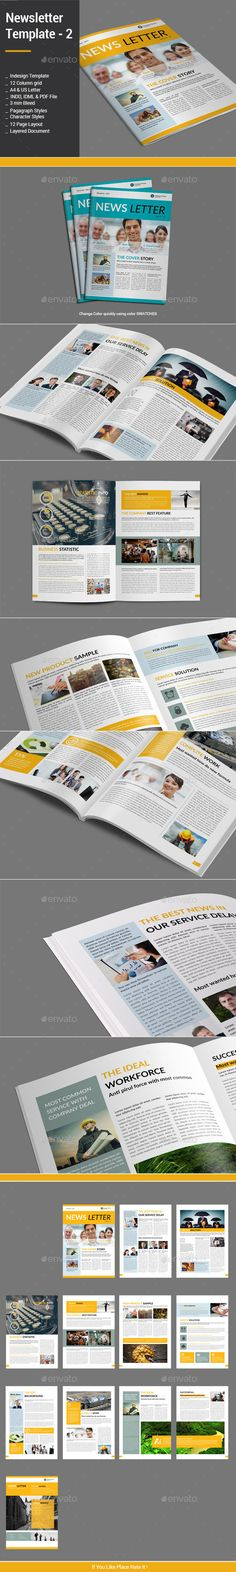 Newsletter Template - 2 - Newsletters Print Templates Download here : https://graphicriver.net/item/newsletter-template-2/12758650?s_rank=88&ref=Al-fatih